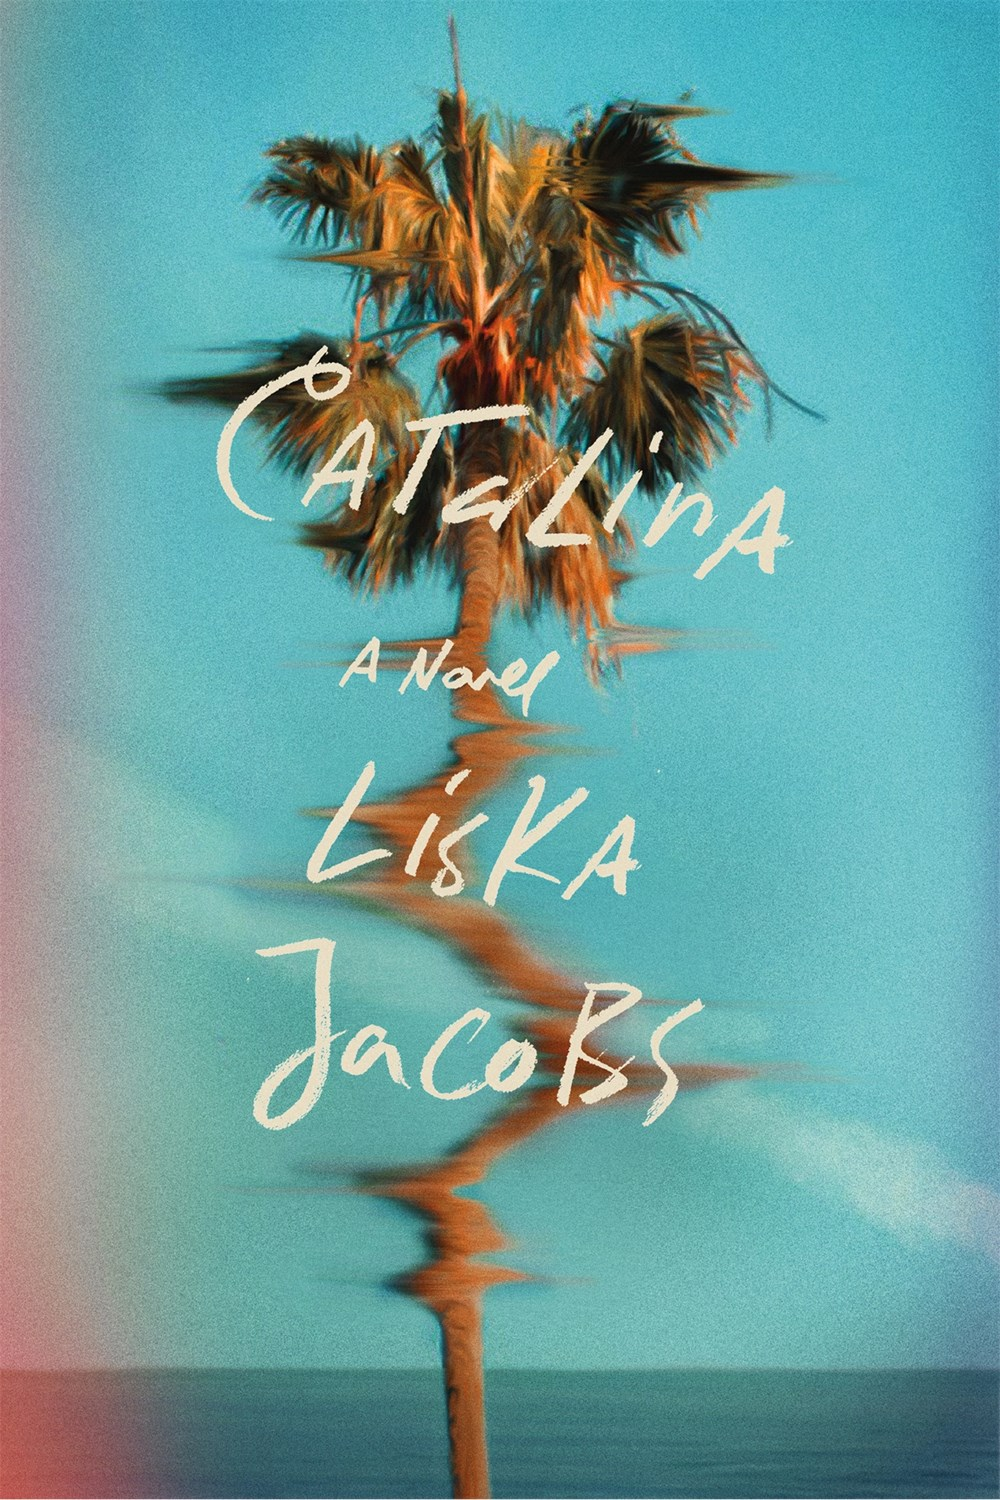 Catalina: A Novel by Liska Jacobs